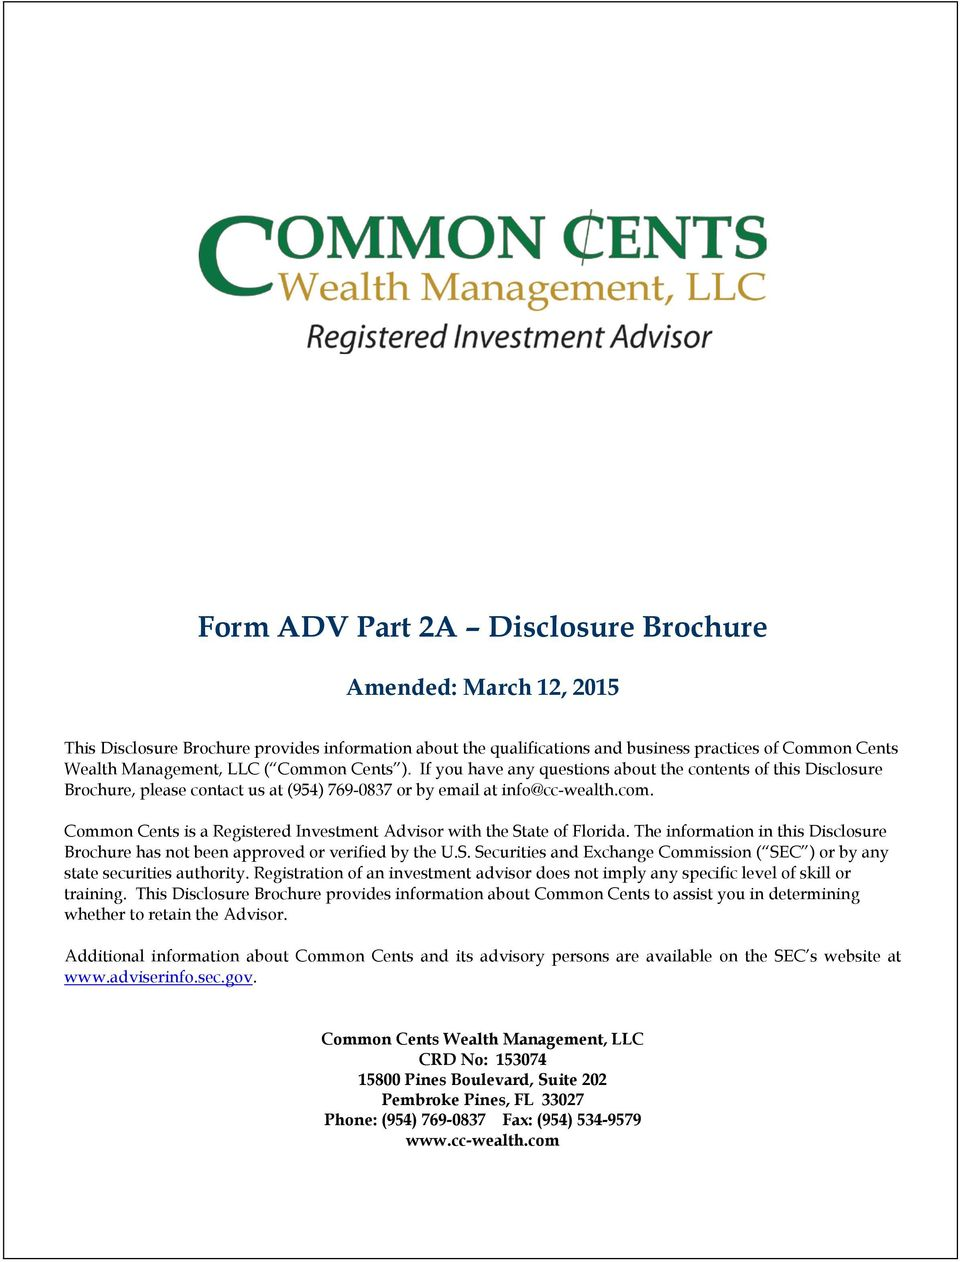 Common Cents is a Registered Investment Advisor with the State of Florida. The information in this Disclosure Brochure has not been approved or verified by the U.S. Securities and Exchange Commission ( SEC ) or by any state securities authority.